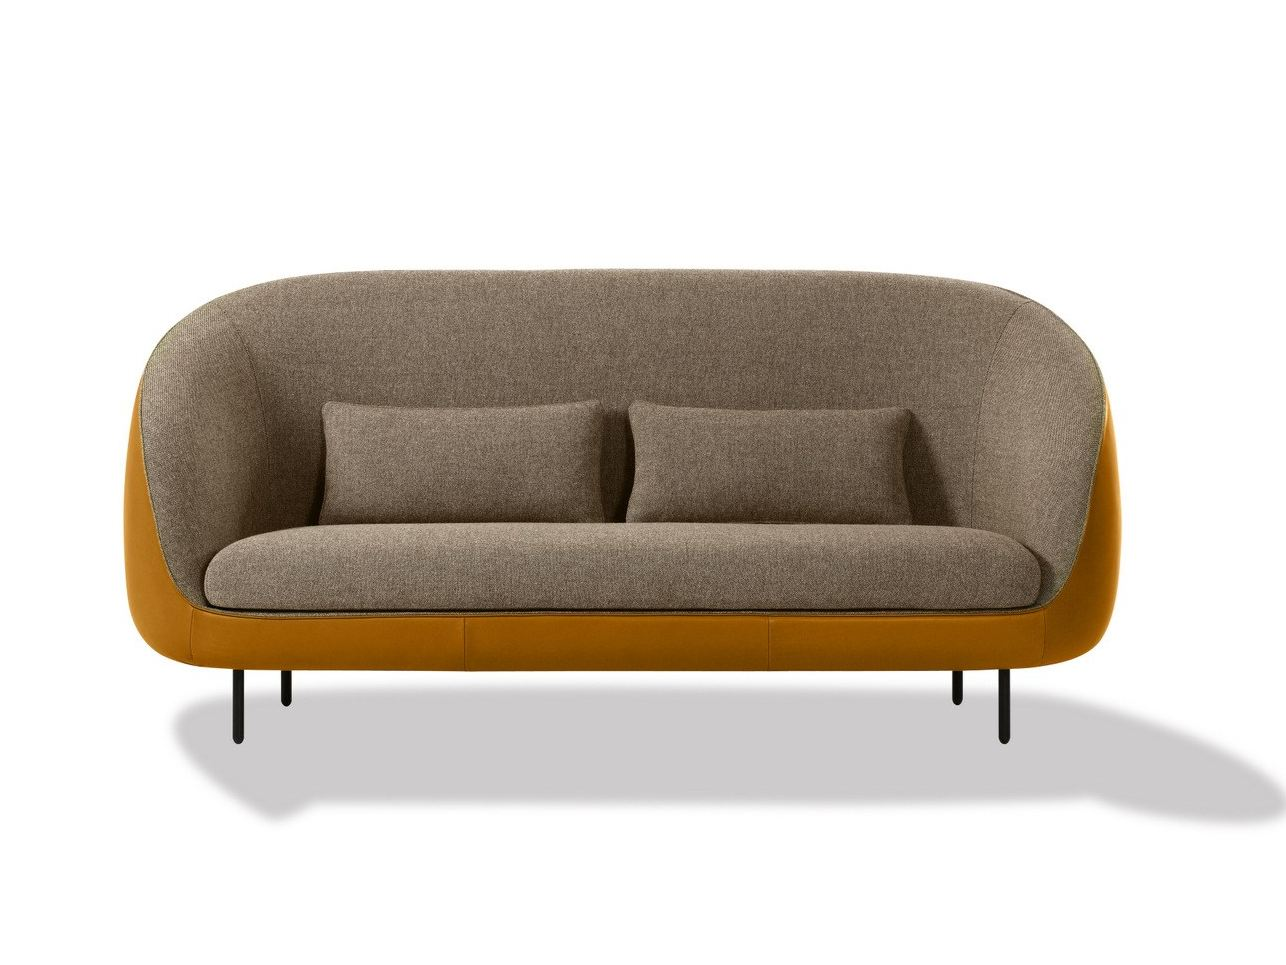 3 Sofas Upholstered 3 Seater Sofa Haiku Collection By Fredericia